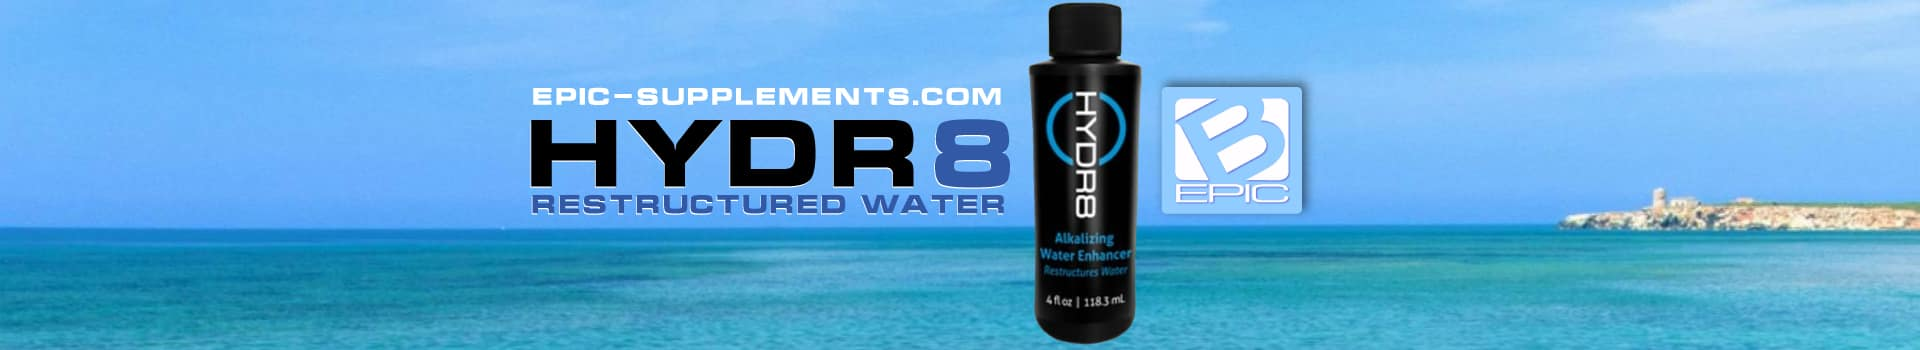 hydr8 bepic structured water